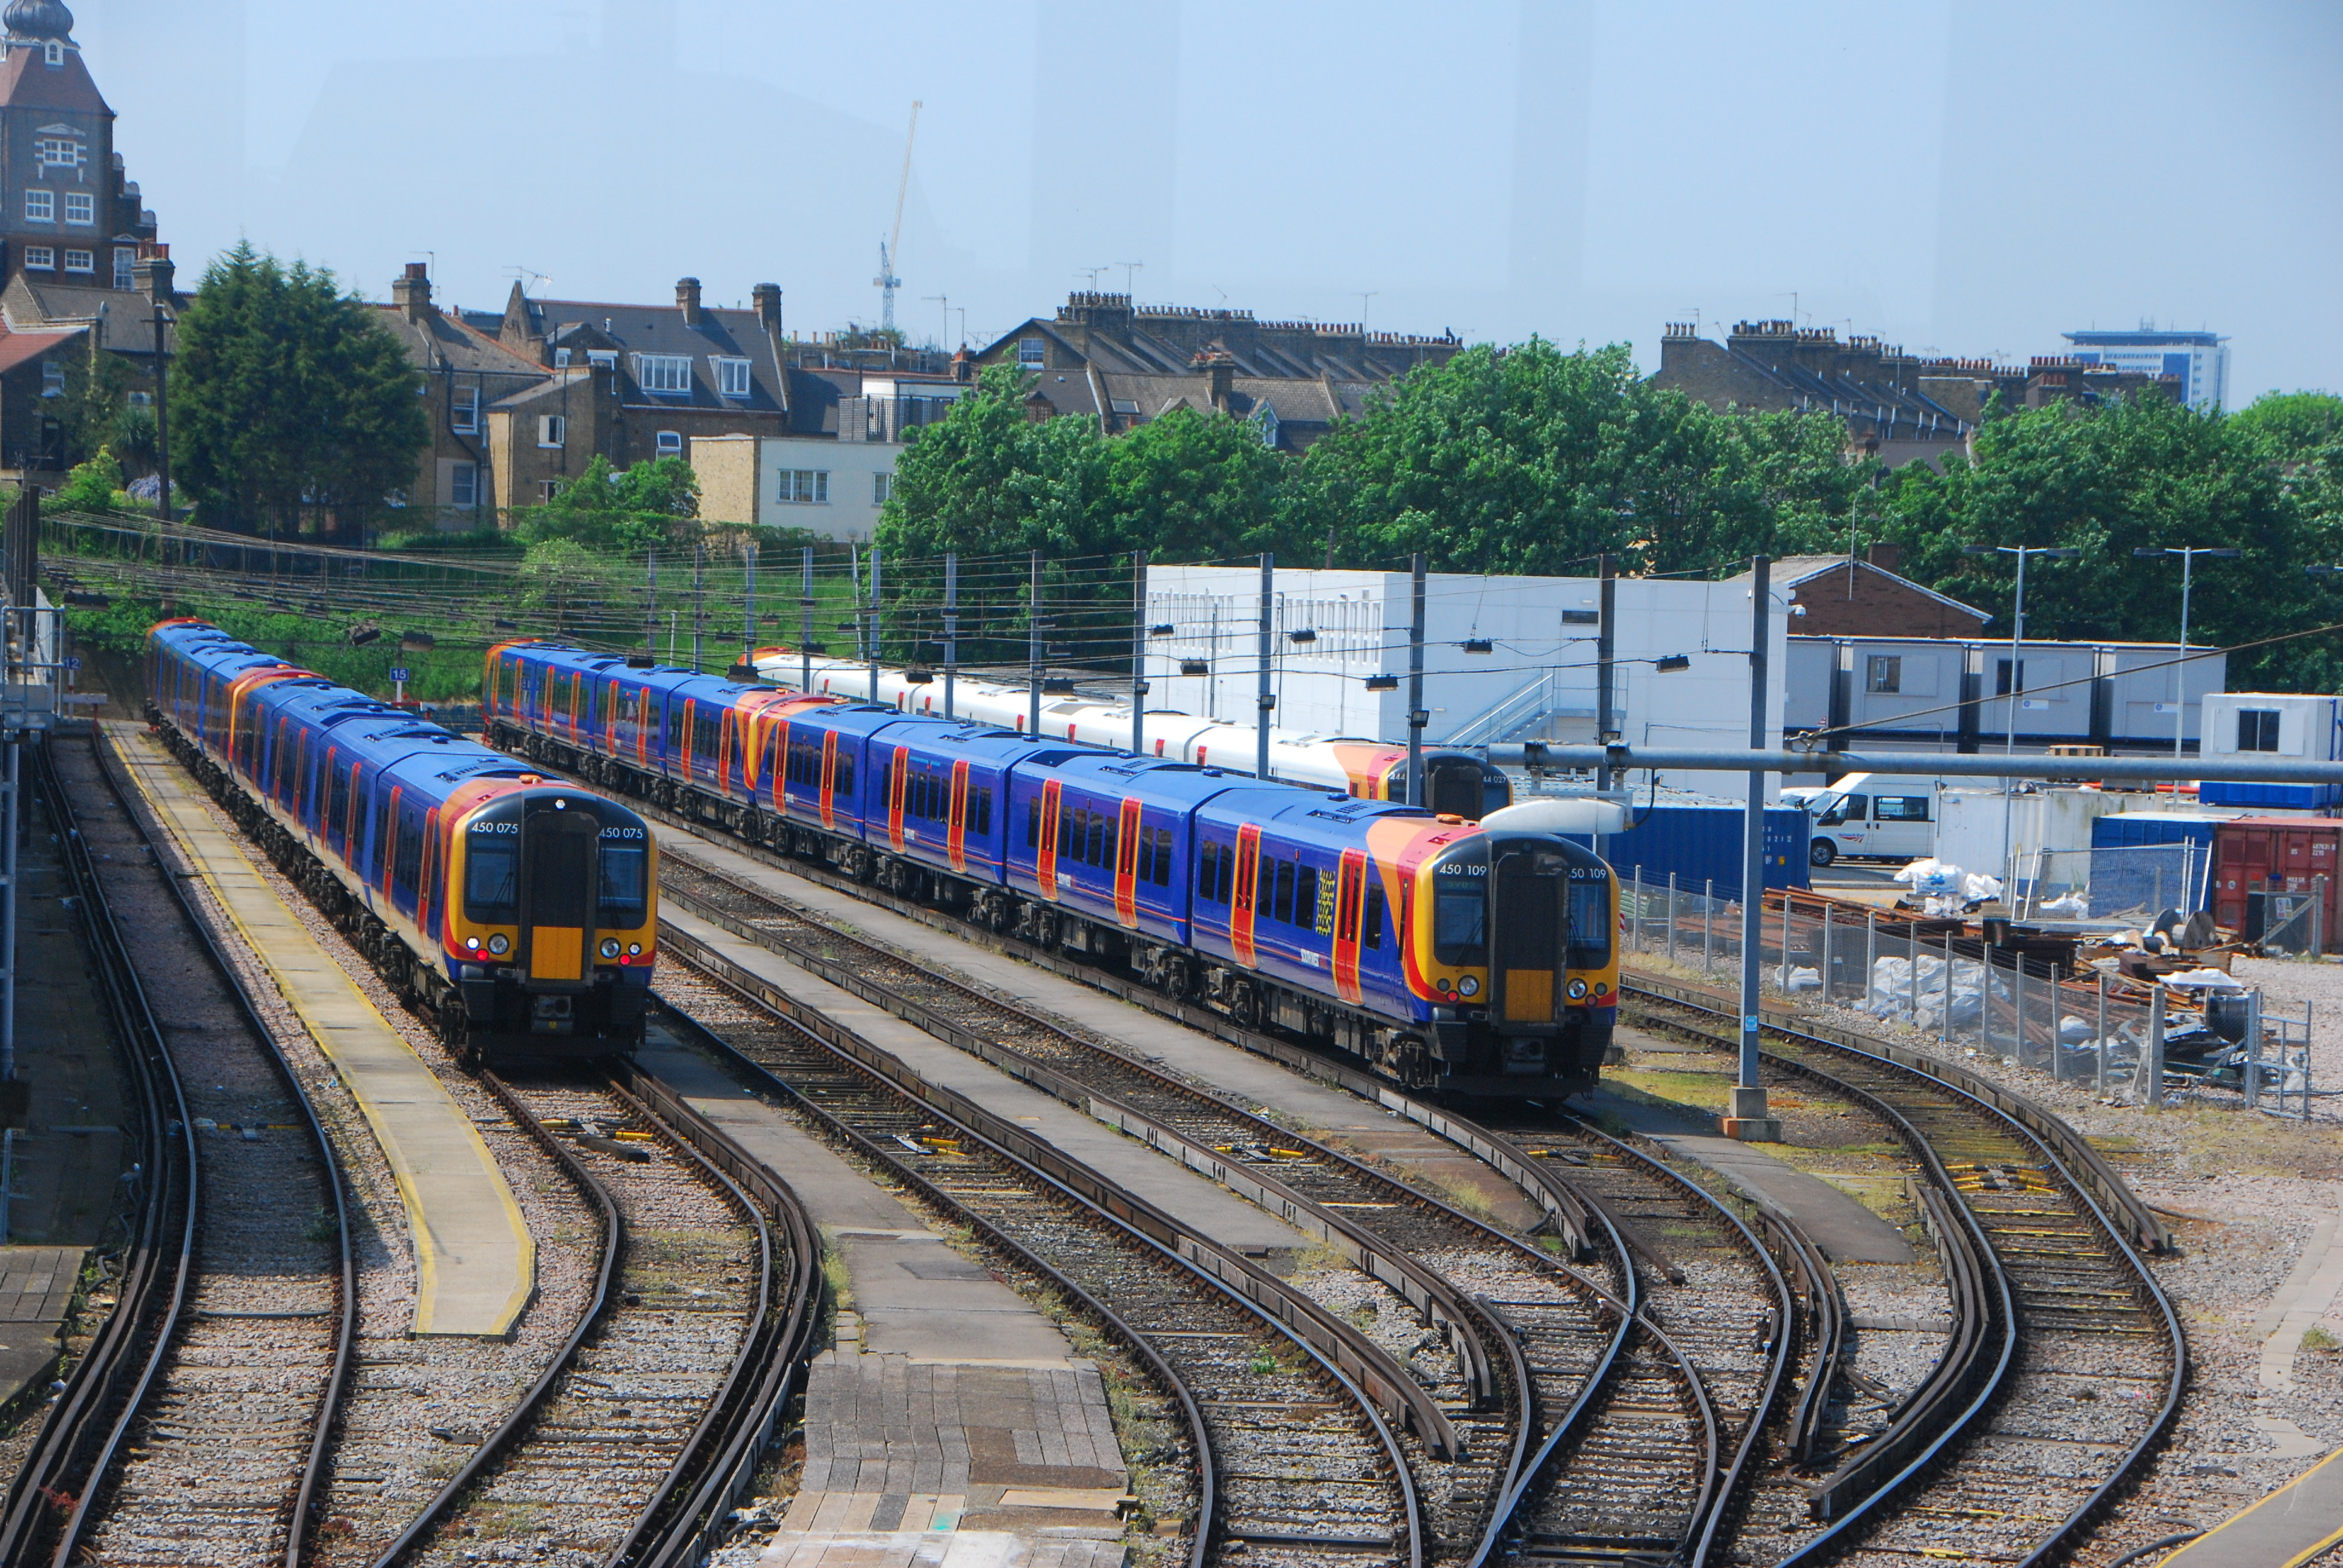 http://upload.wikimedia.org/wikipedia/commons/f/f4/Class450-ClaphamJunction-20080513.JPG